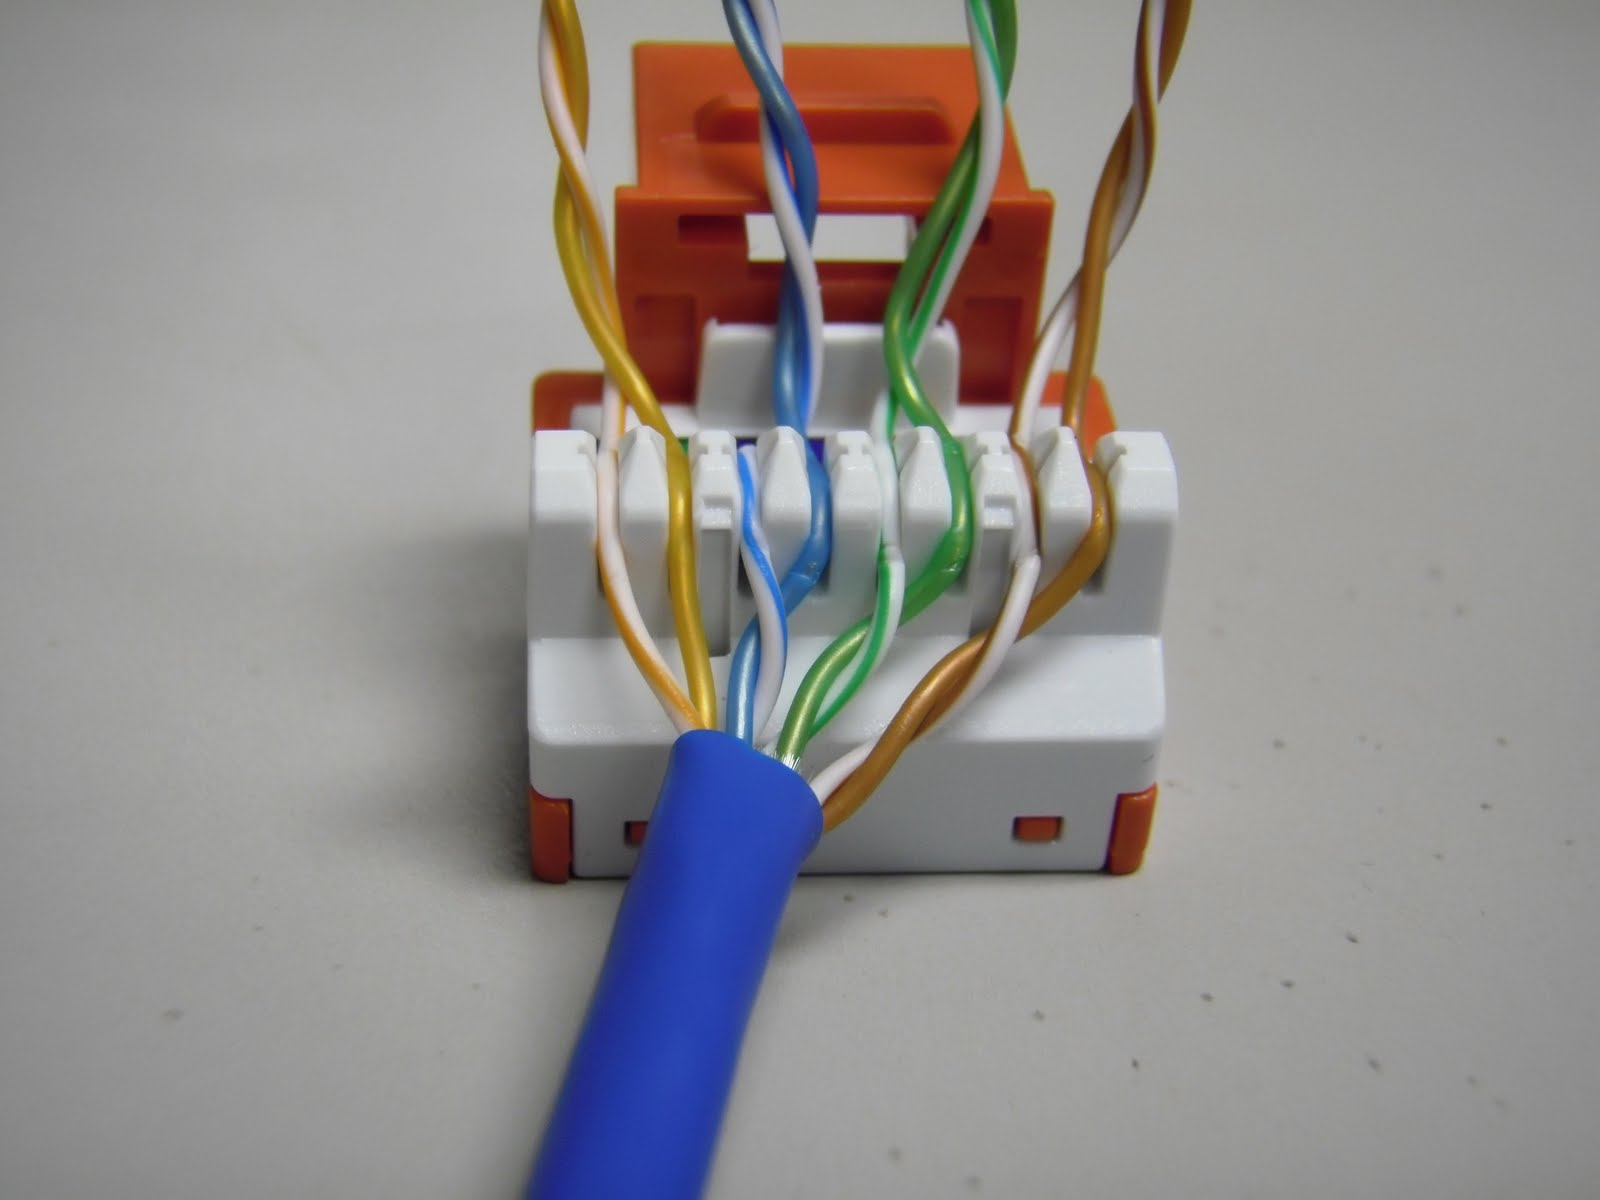 Rj11 Wiring Color Code Diagram Besides Rj11 Connector Wiring